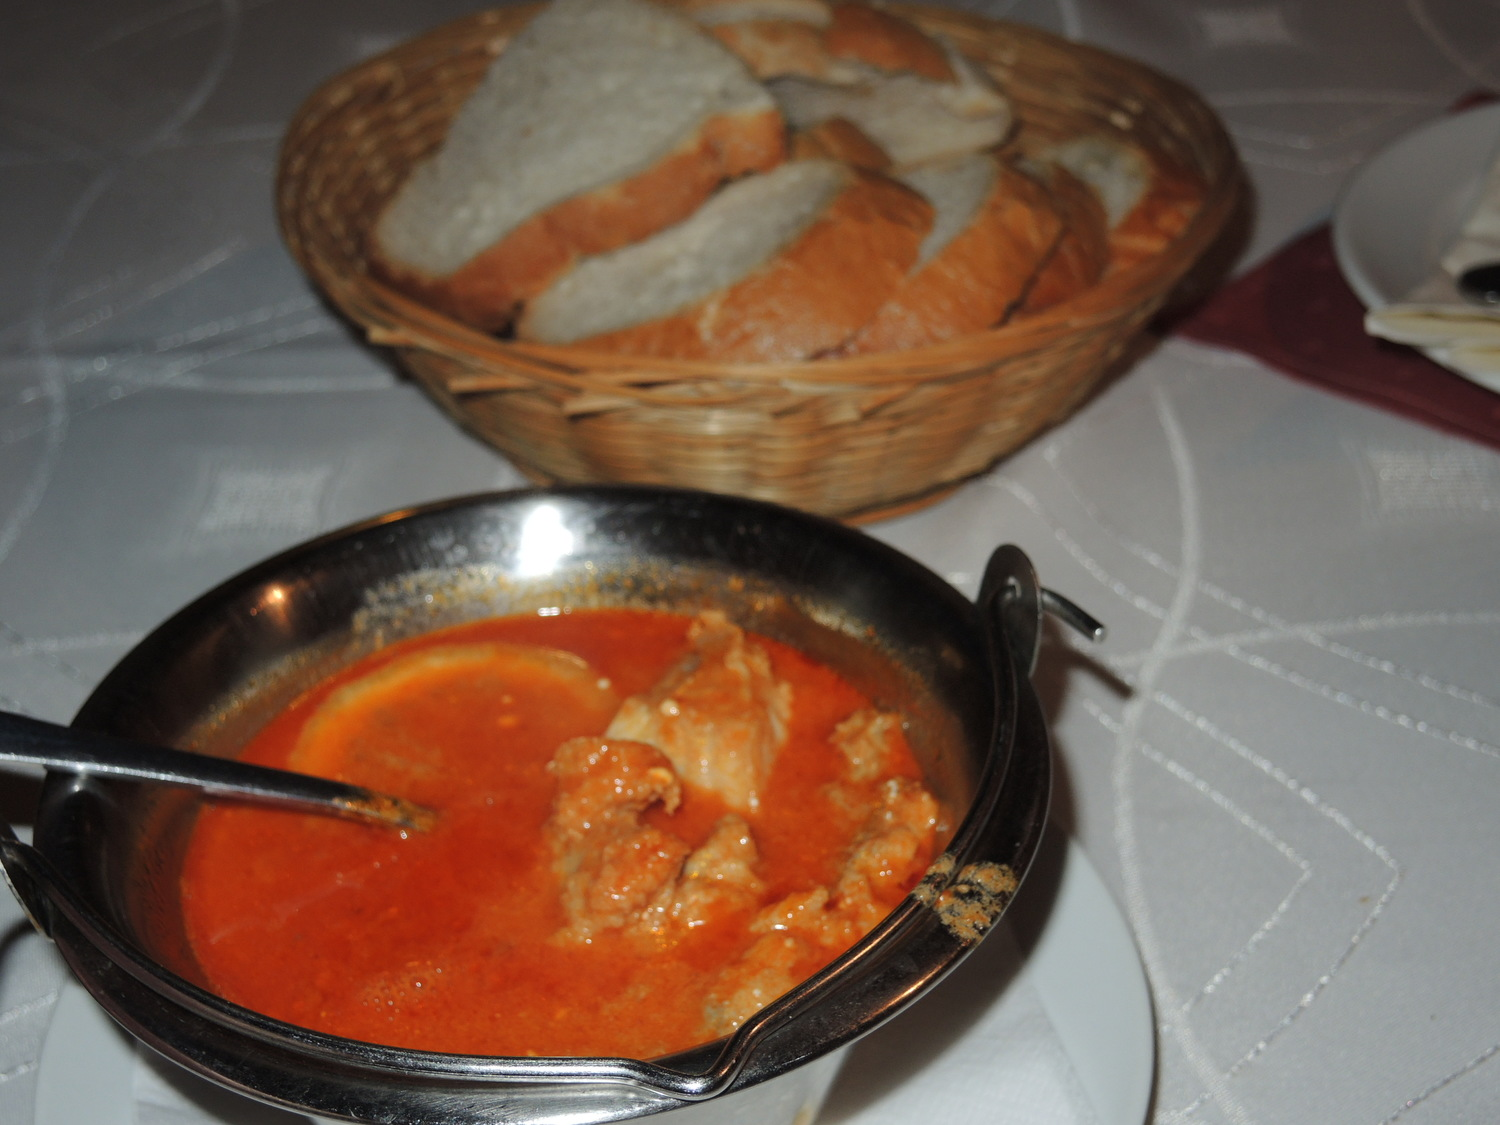 National Hungarian dishes. Fisherman's soup halászlé